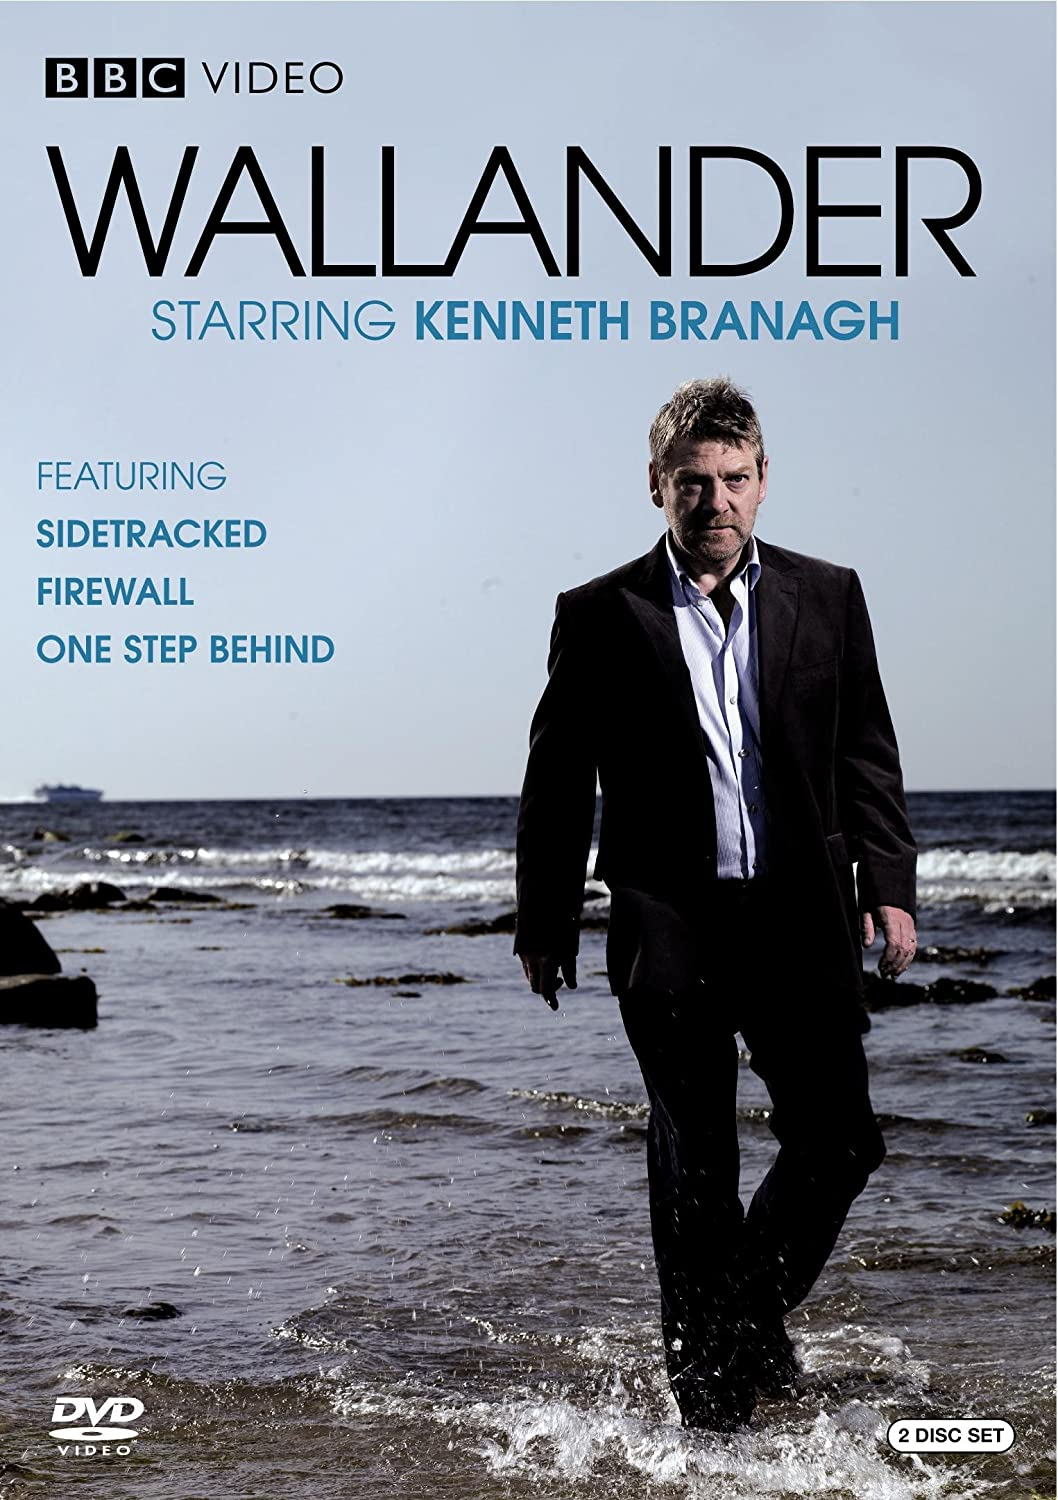 Kenneth Branagh Returning as Wallander – The British TV Place